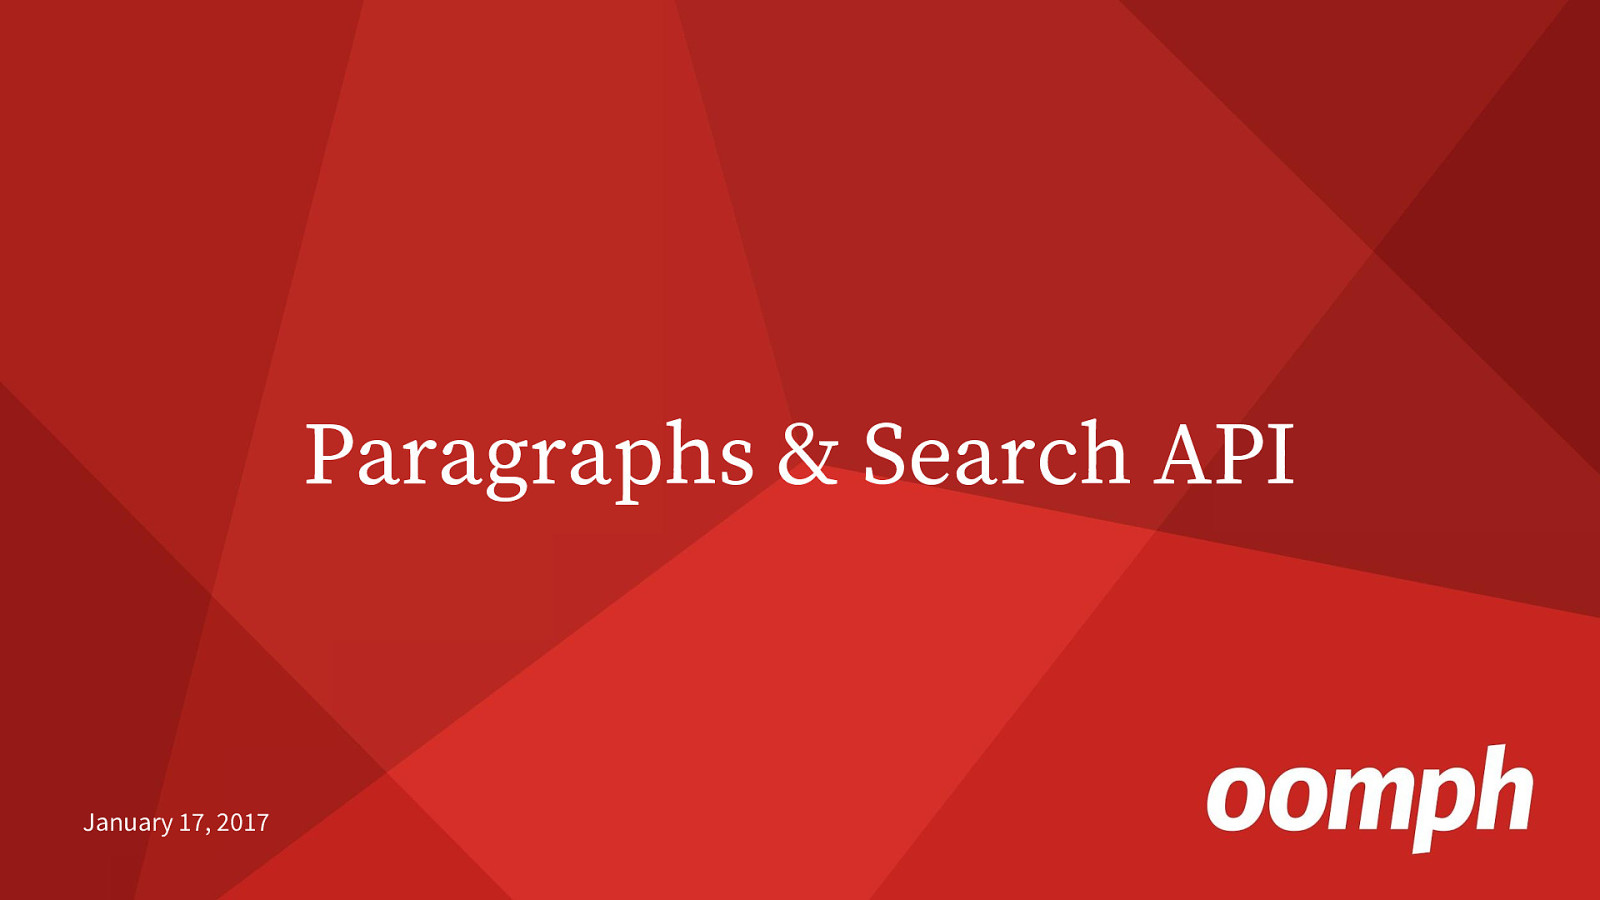 Paragraphs & Search API